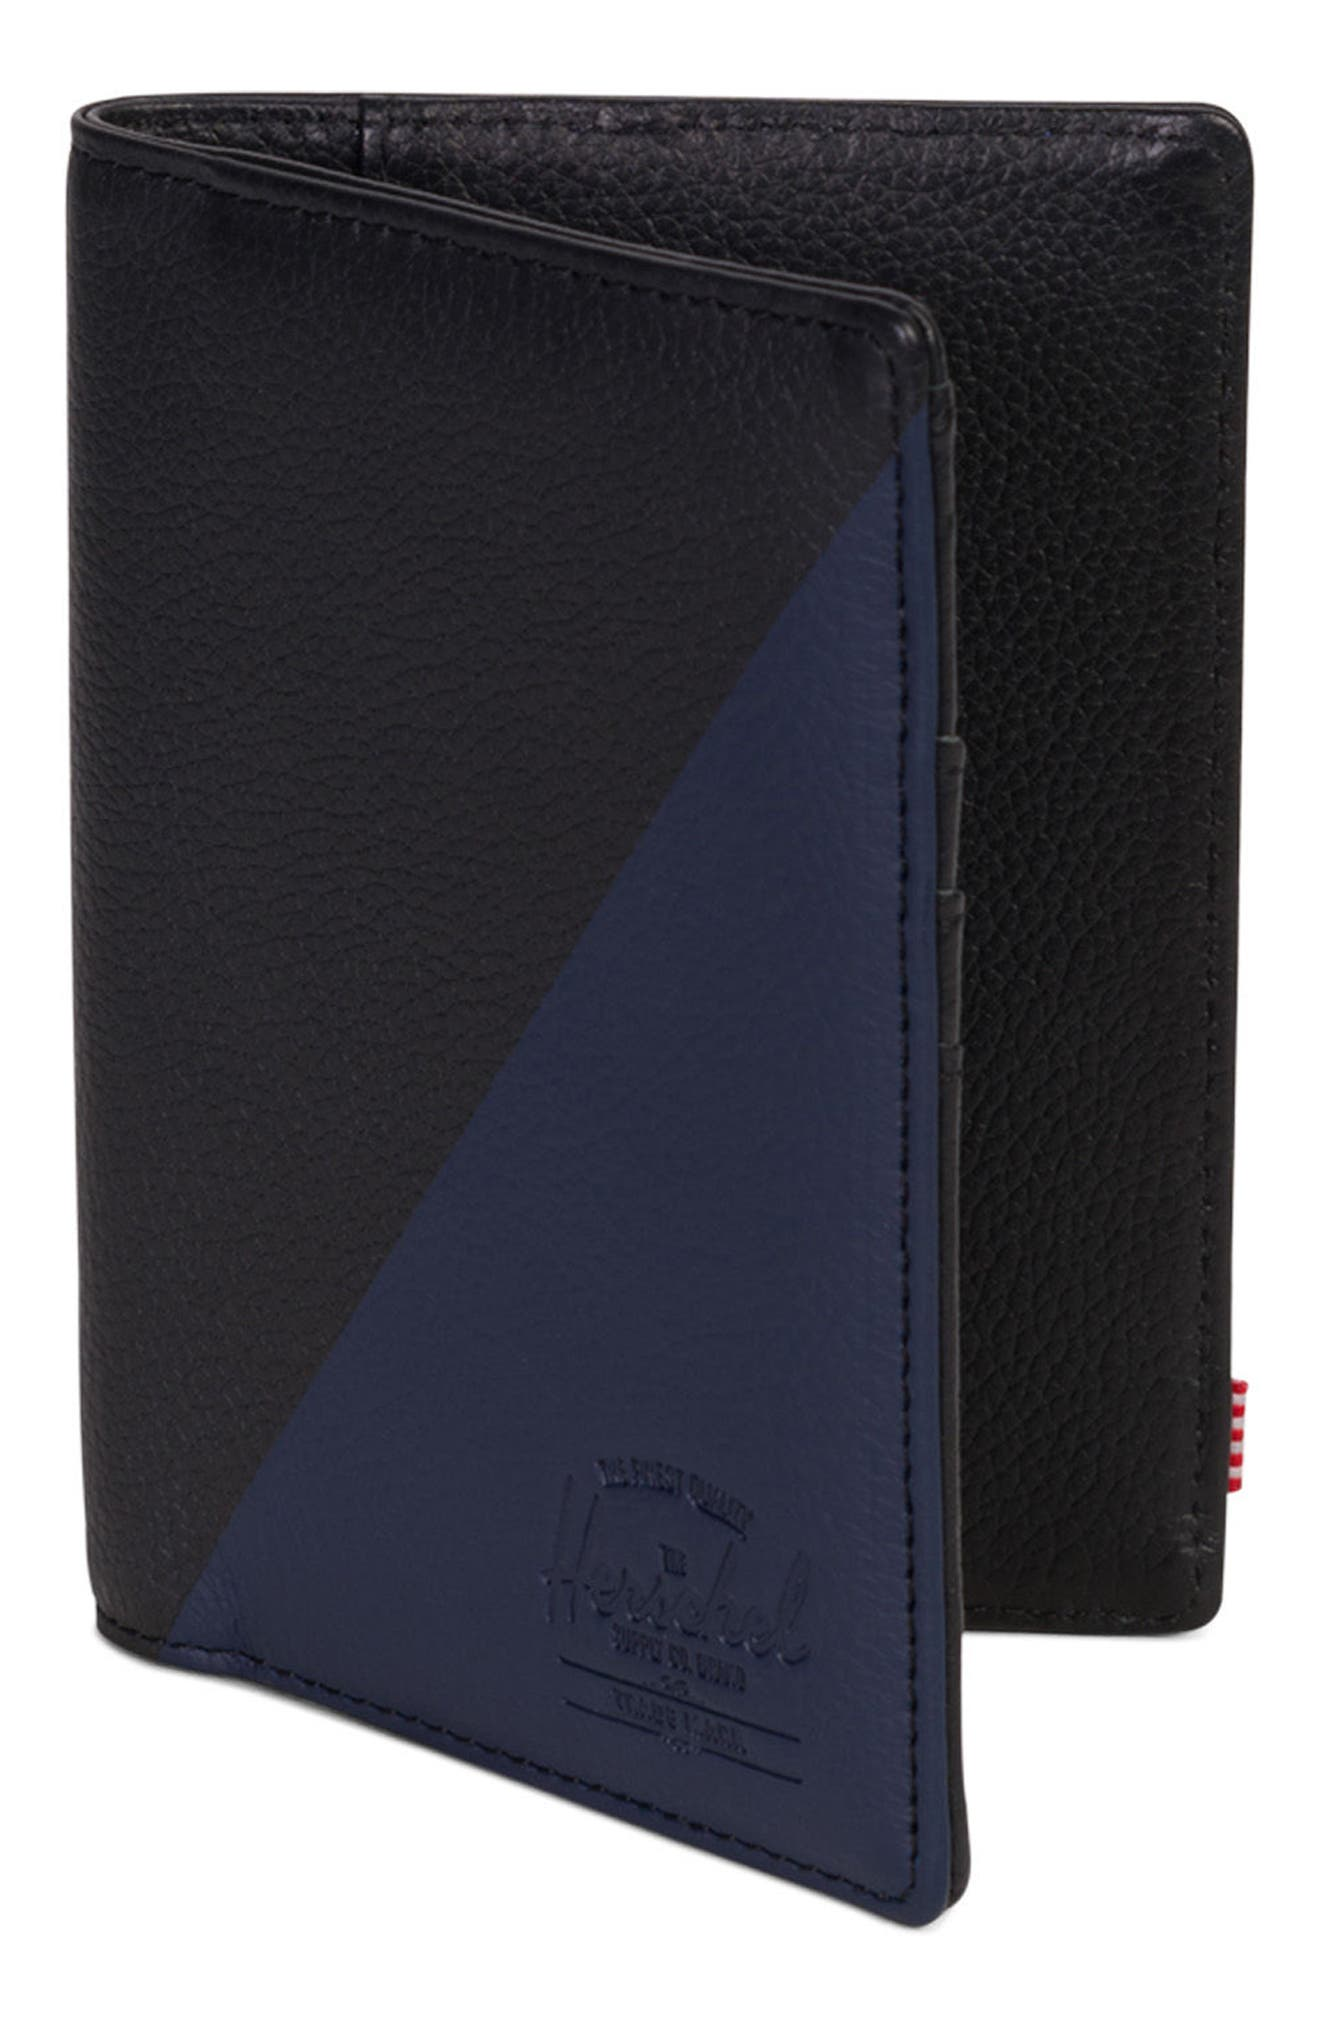 Raynor Offset Leather Wallet,                             Alternate thumbnail 3, color,                             Black